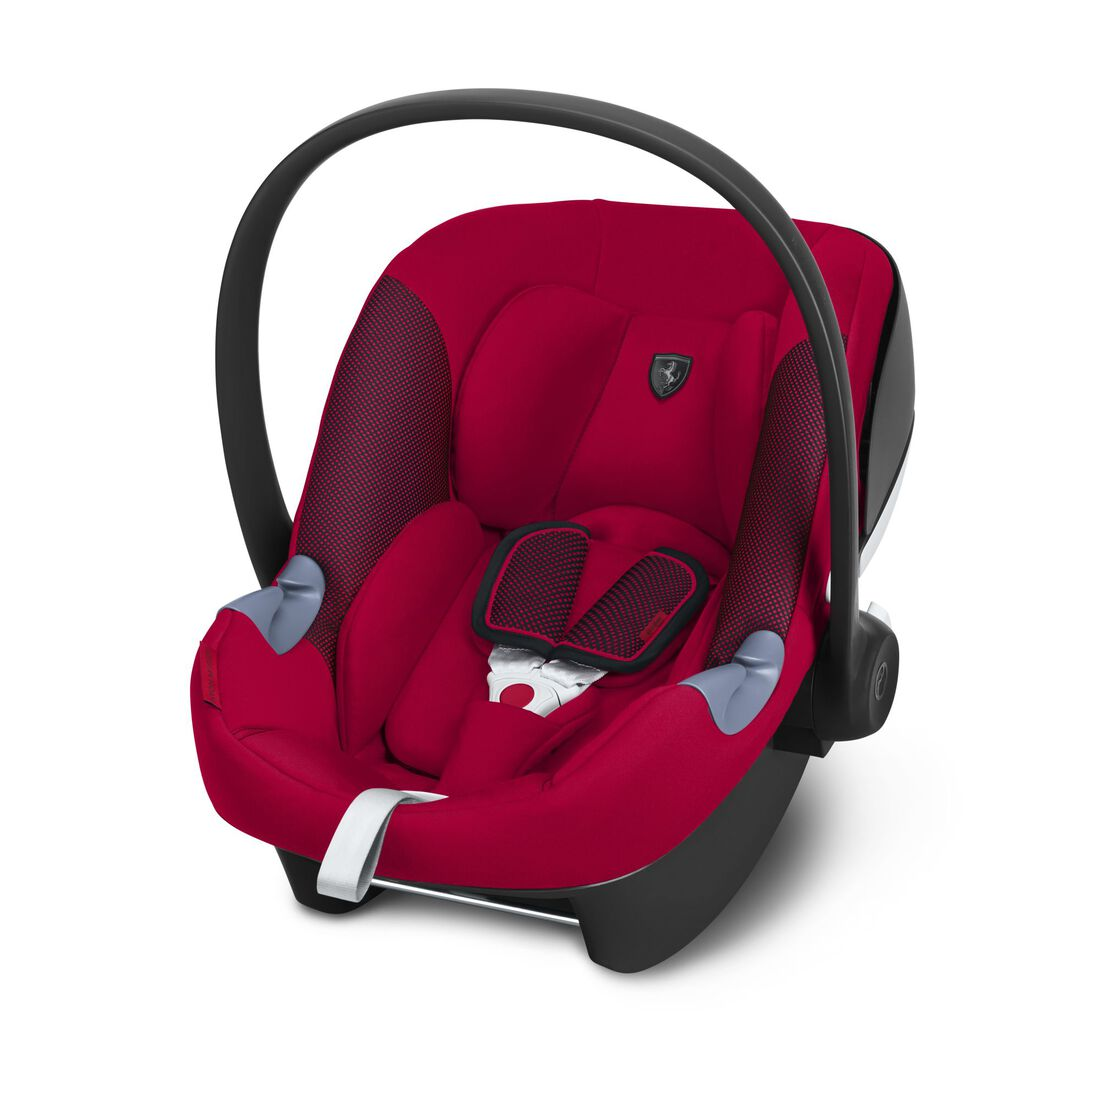 CYBEX Aton M i-Size - Ferrari Racing Red in Ferrari Racing Red large Bild 1